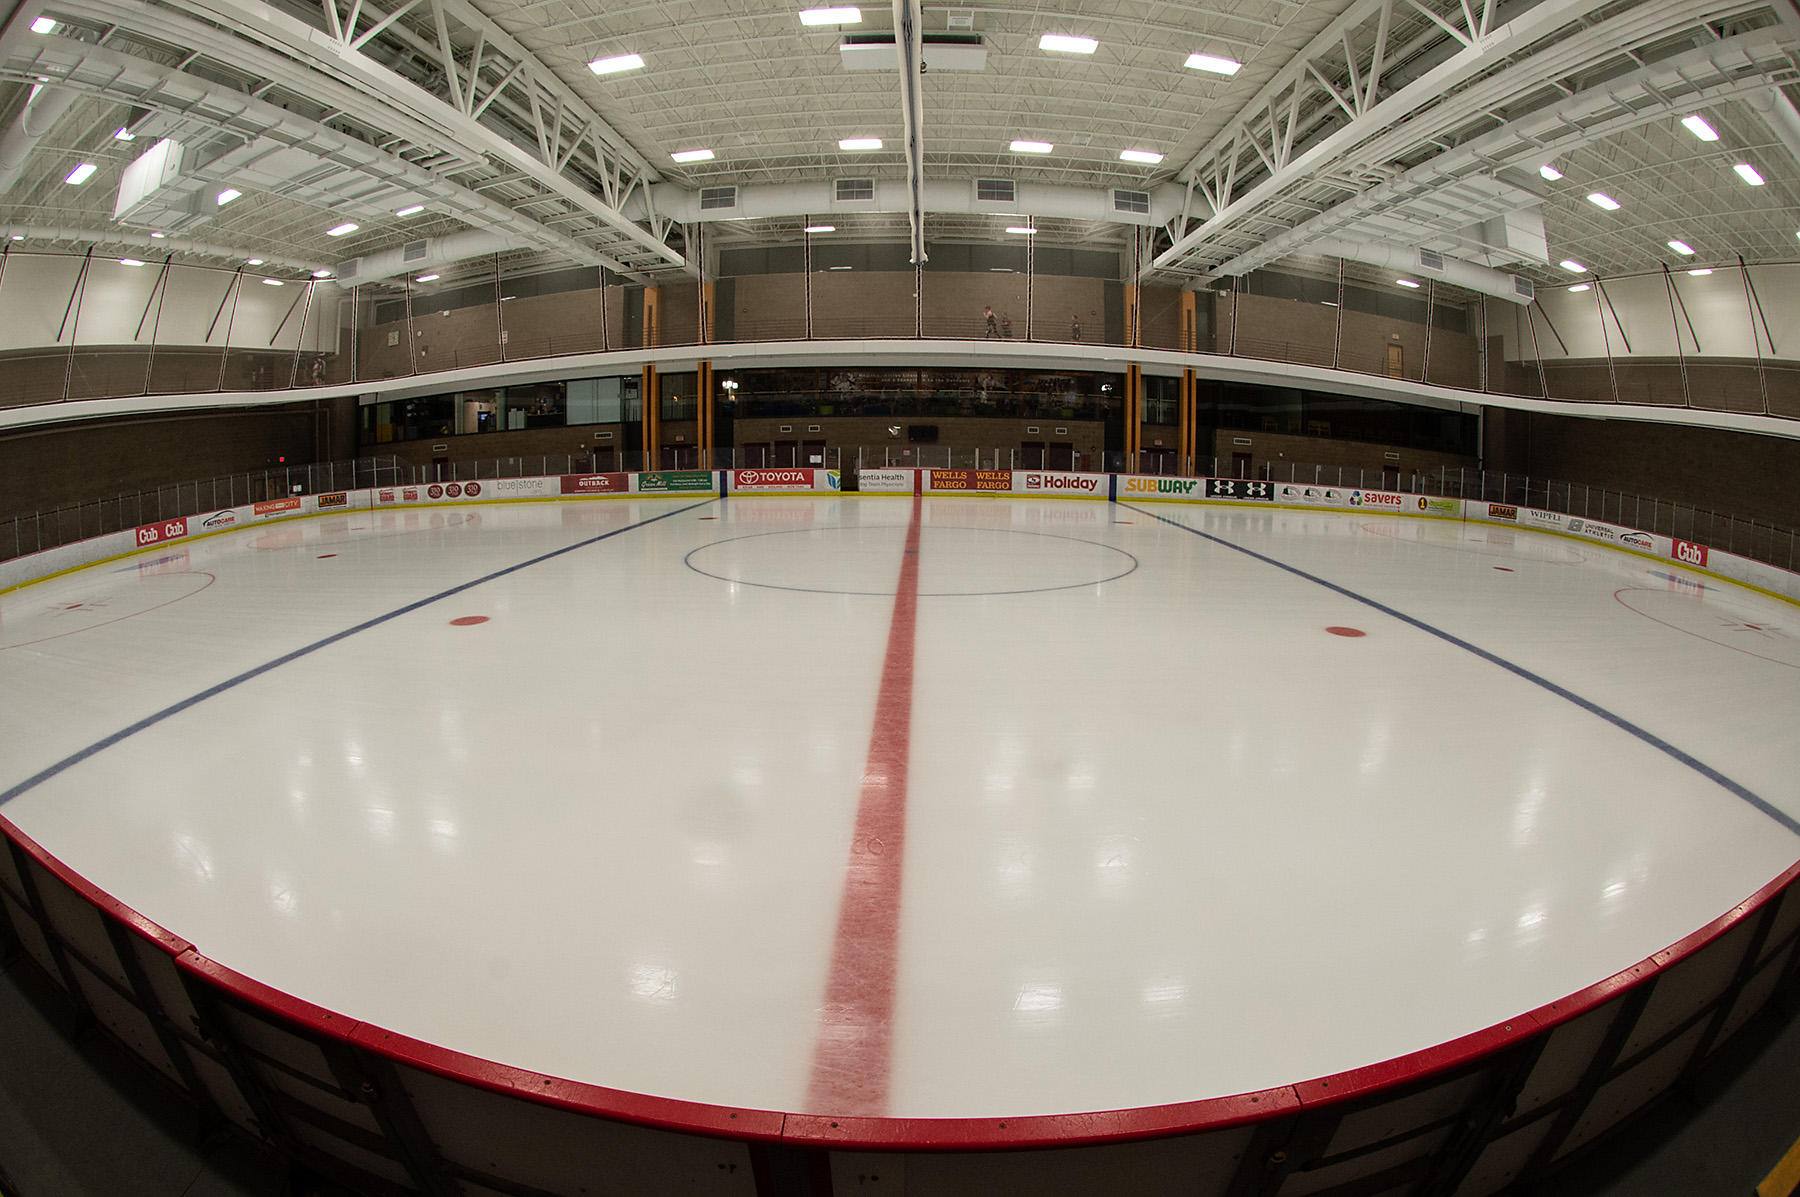 UMD's on-campus ice rink